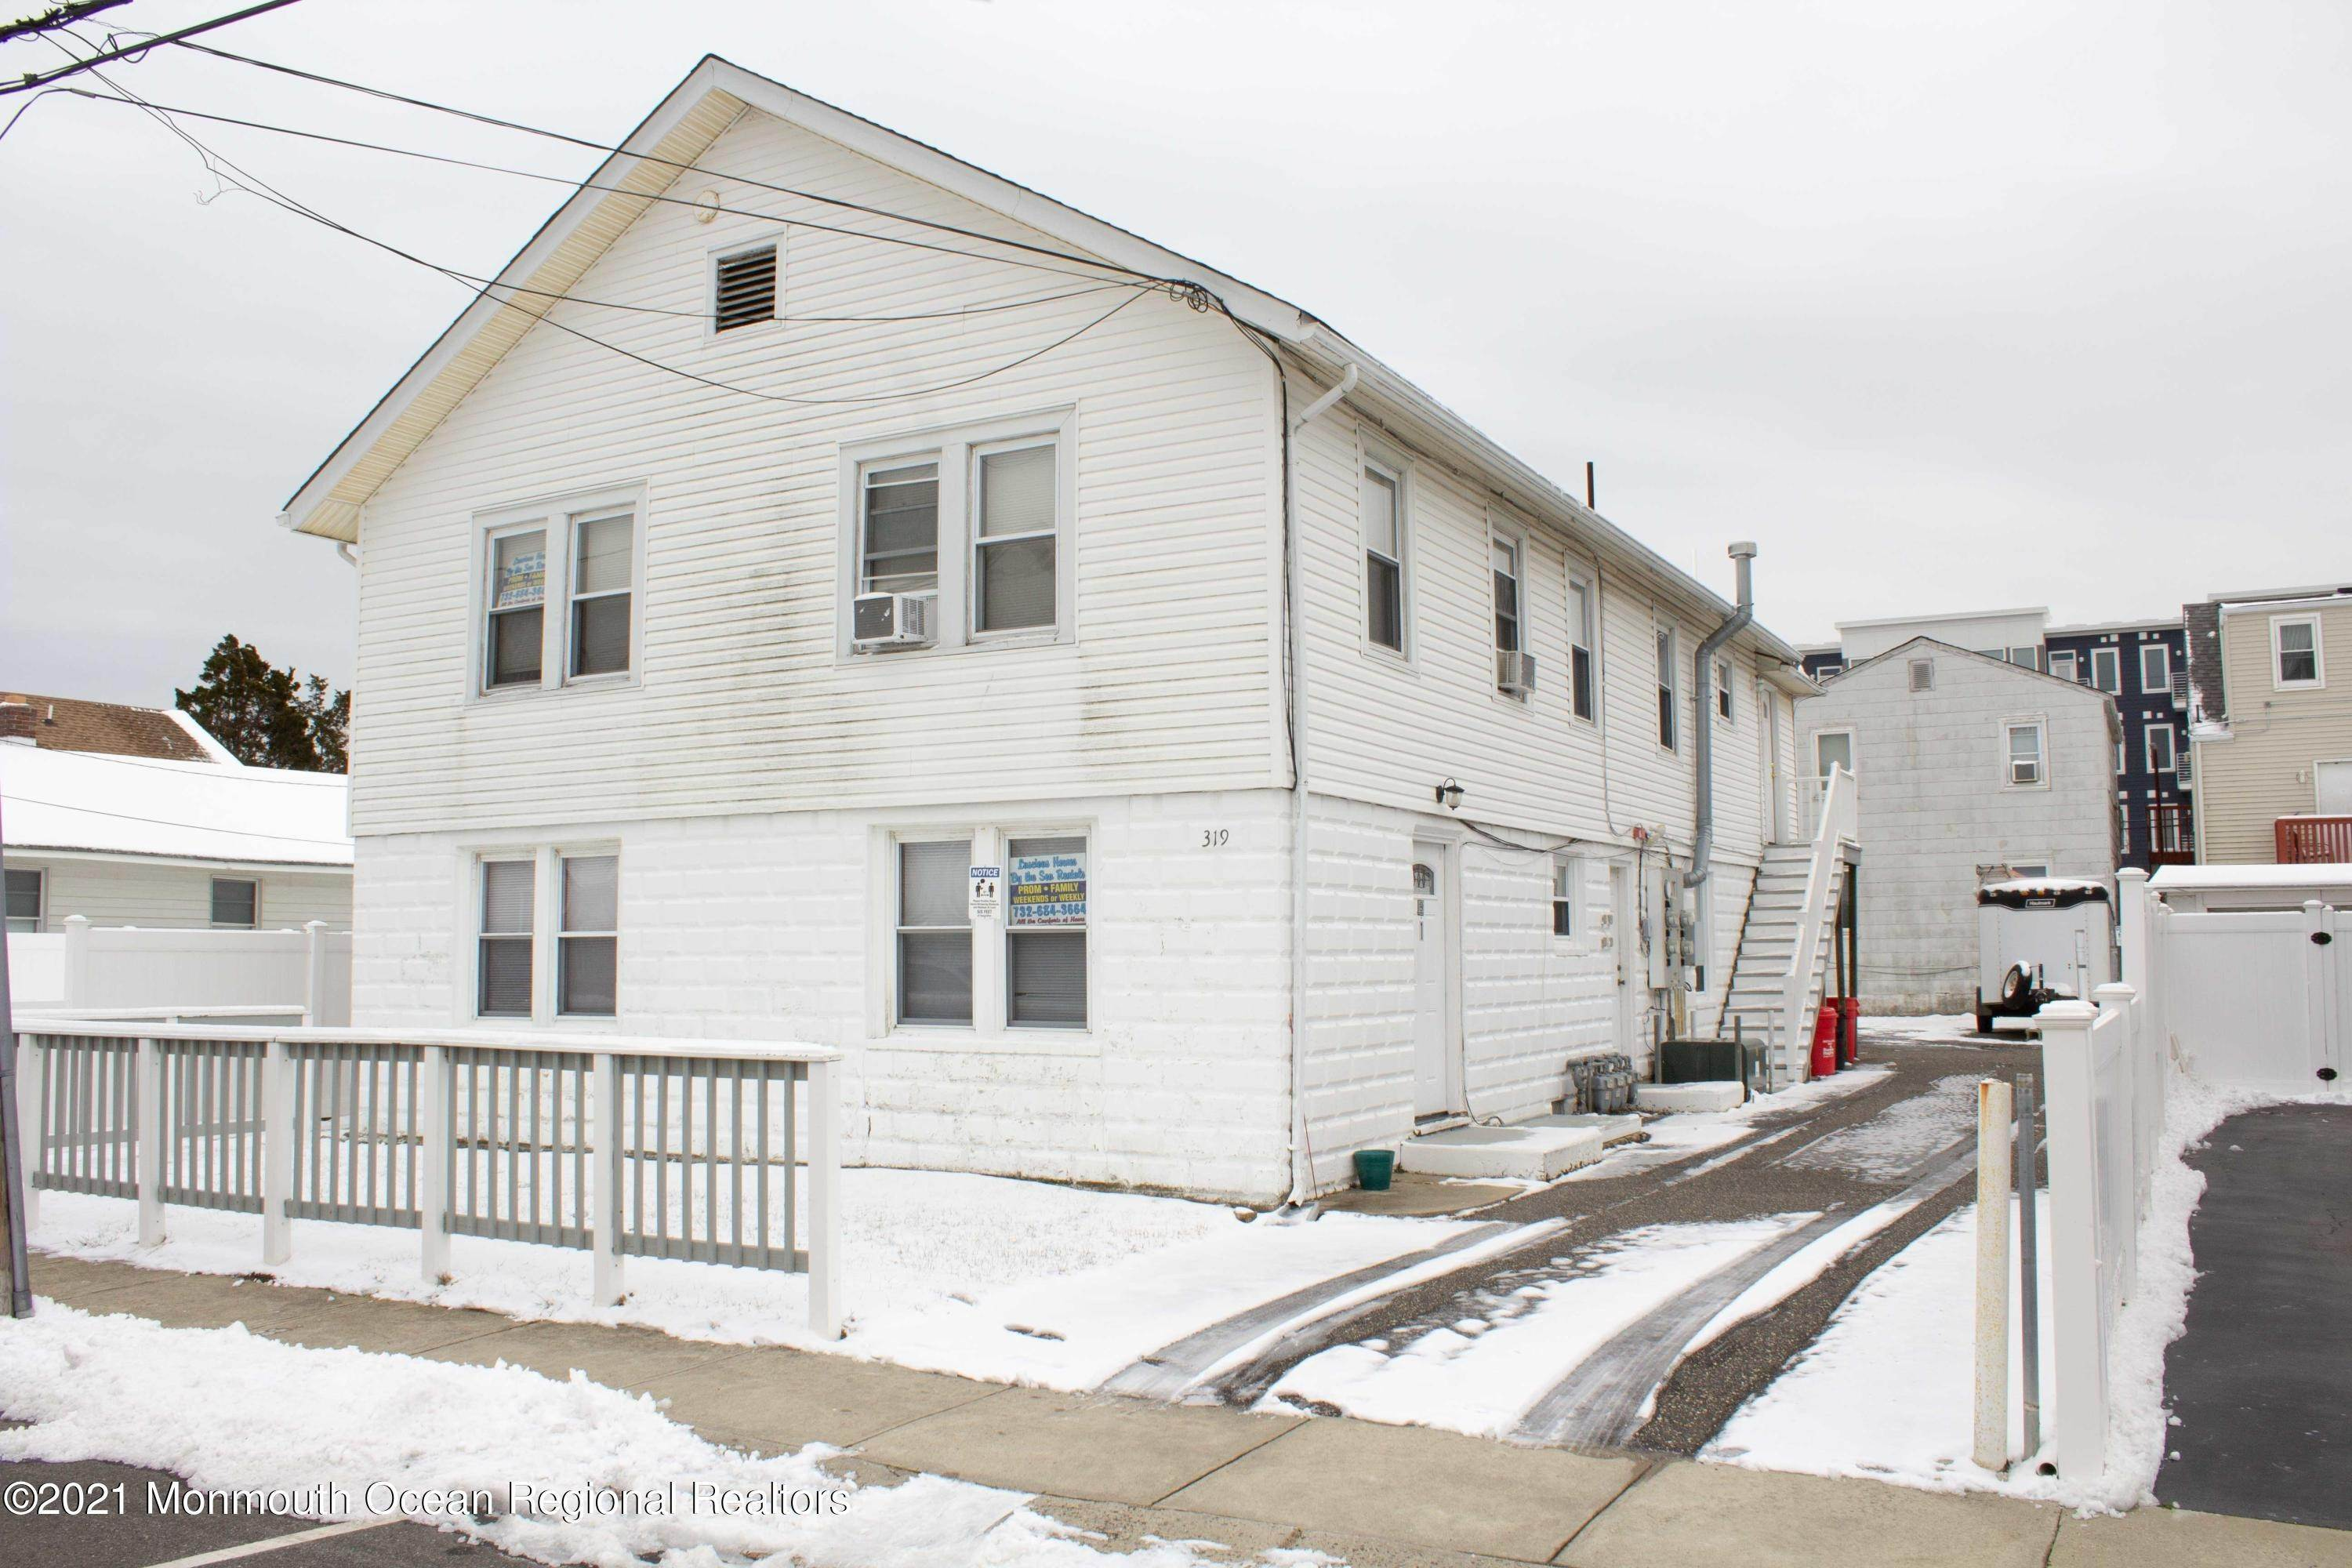 Multi-Family Homes for Sale at 319 Webster Avenue Seaside Heights, New Jersey 08751 United States